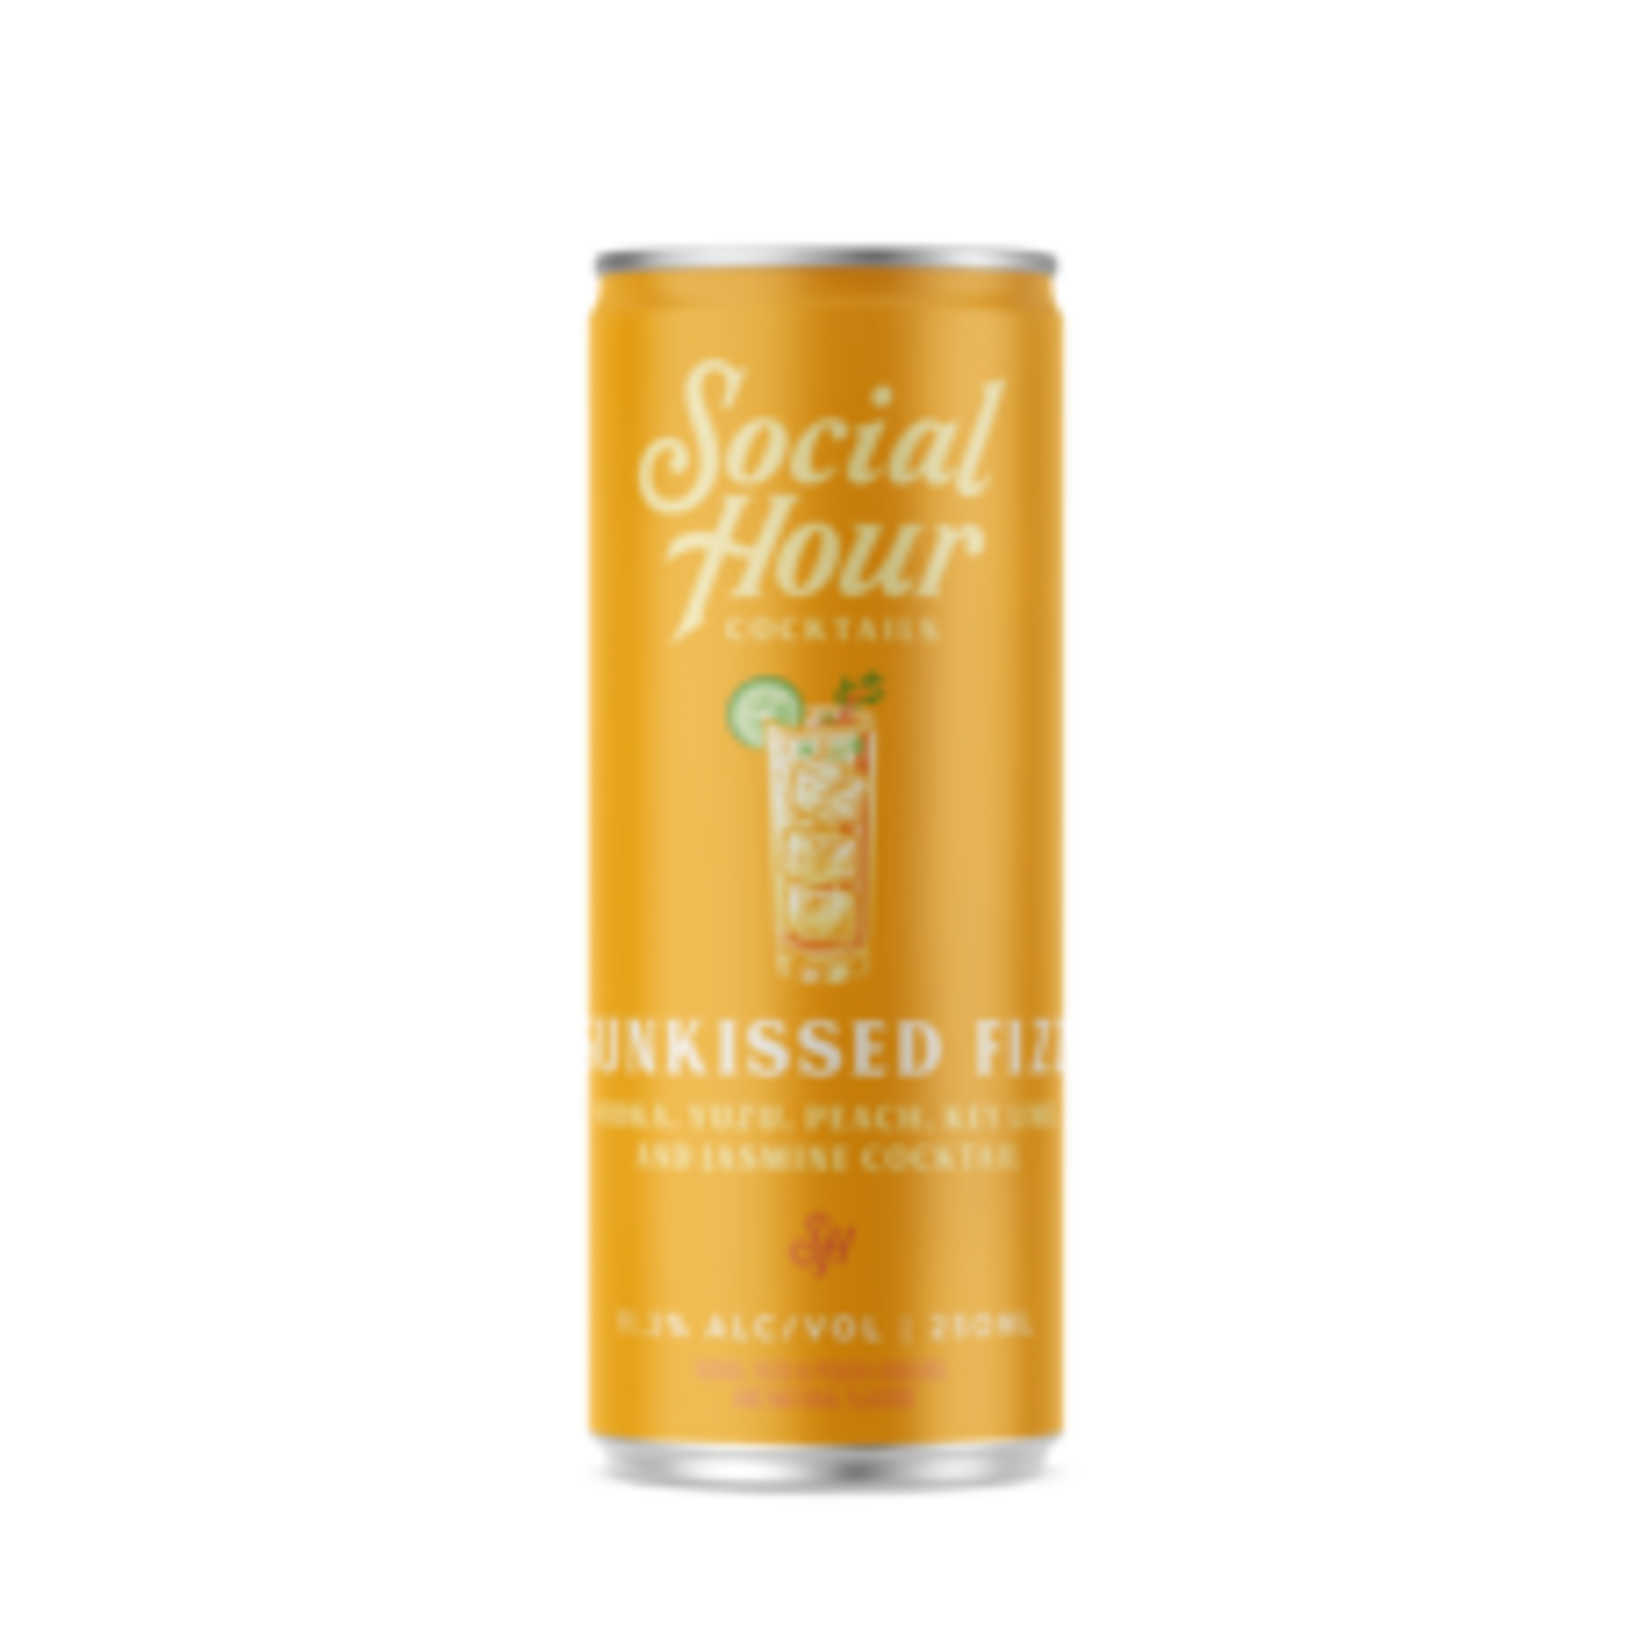 Spirits Social Hour Cocktails Brooklyn Craft Sunkissed Fizz Can 250ml